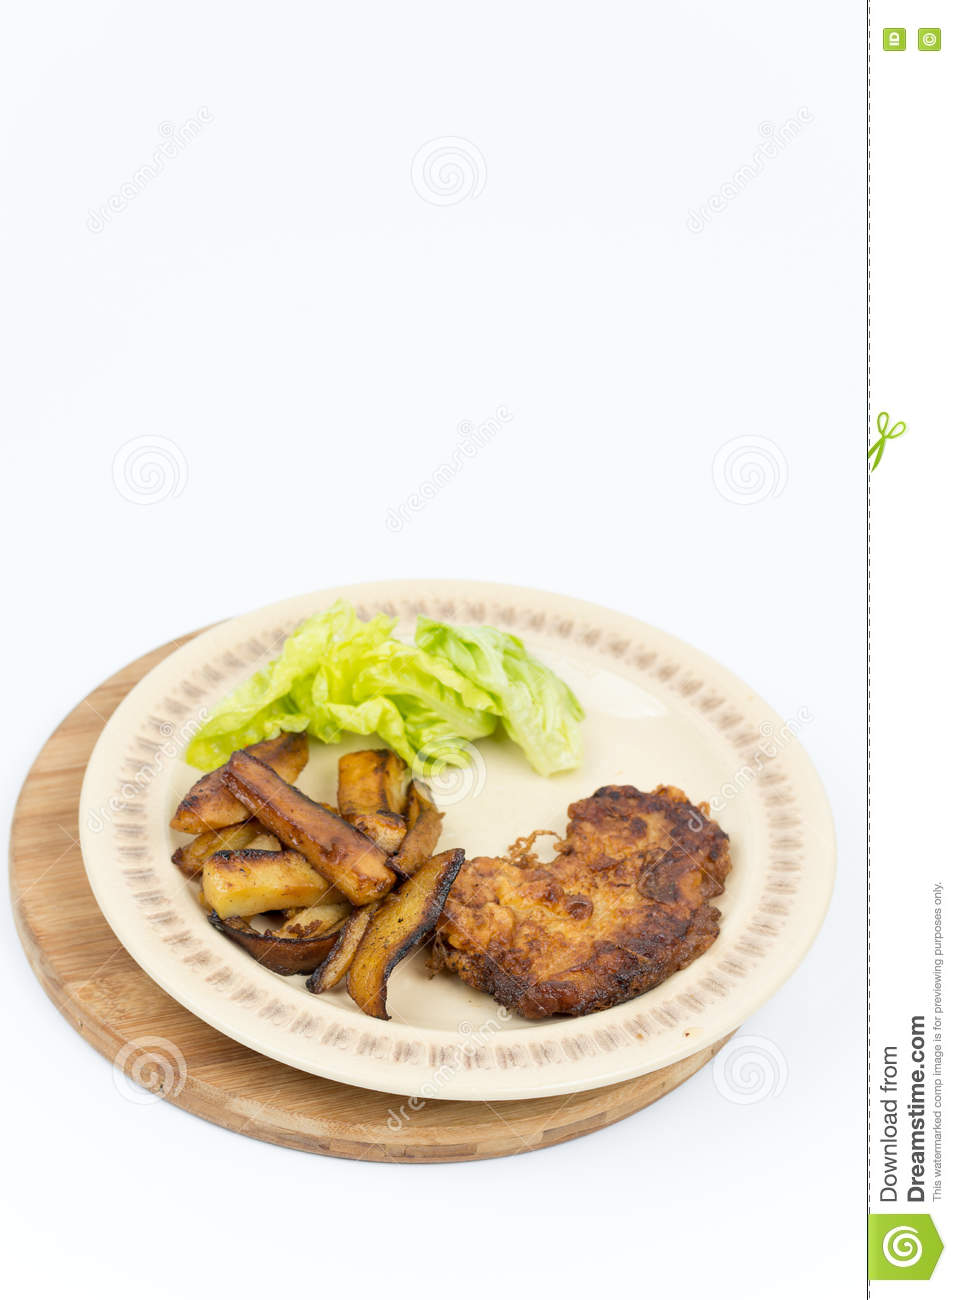 Fried steak potatoes and lettuce